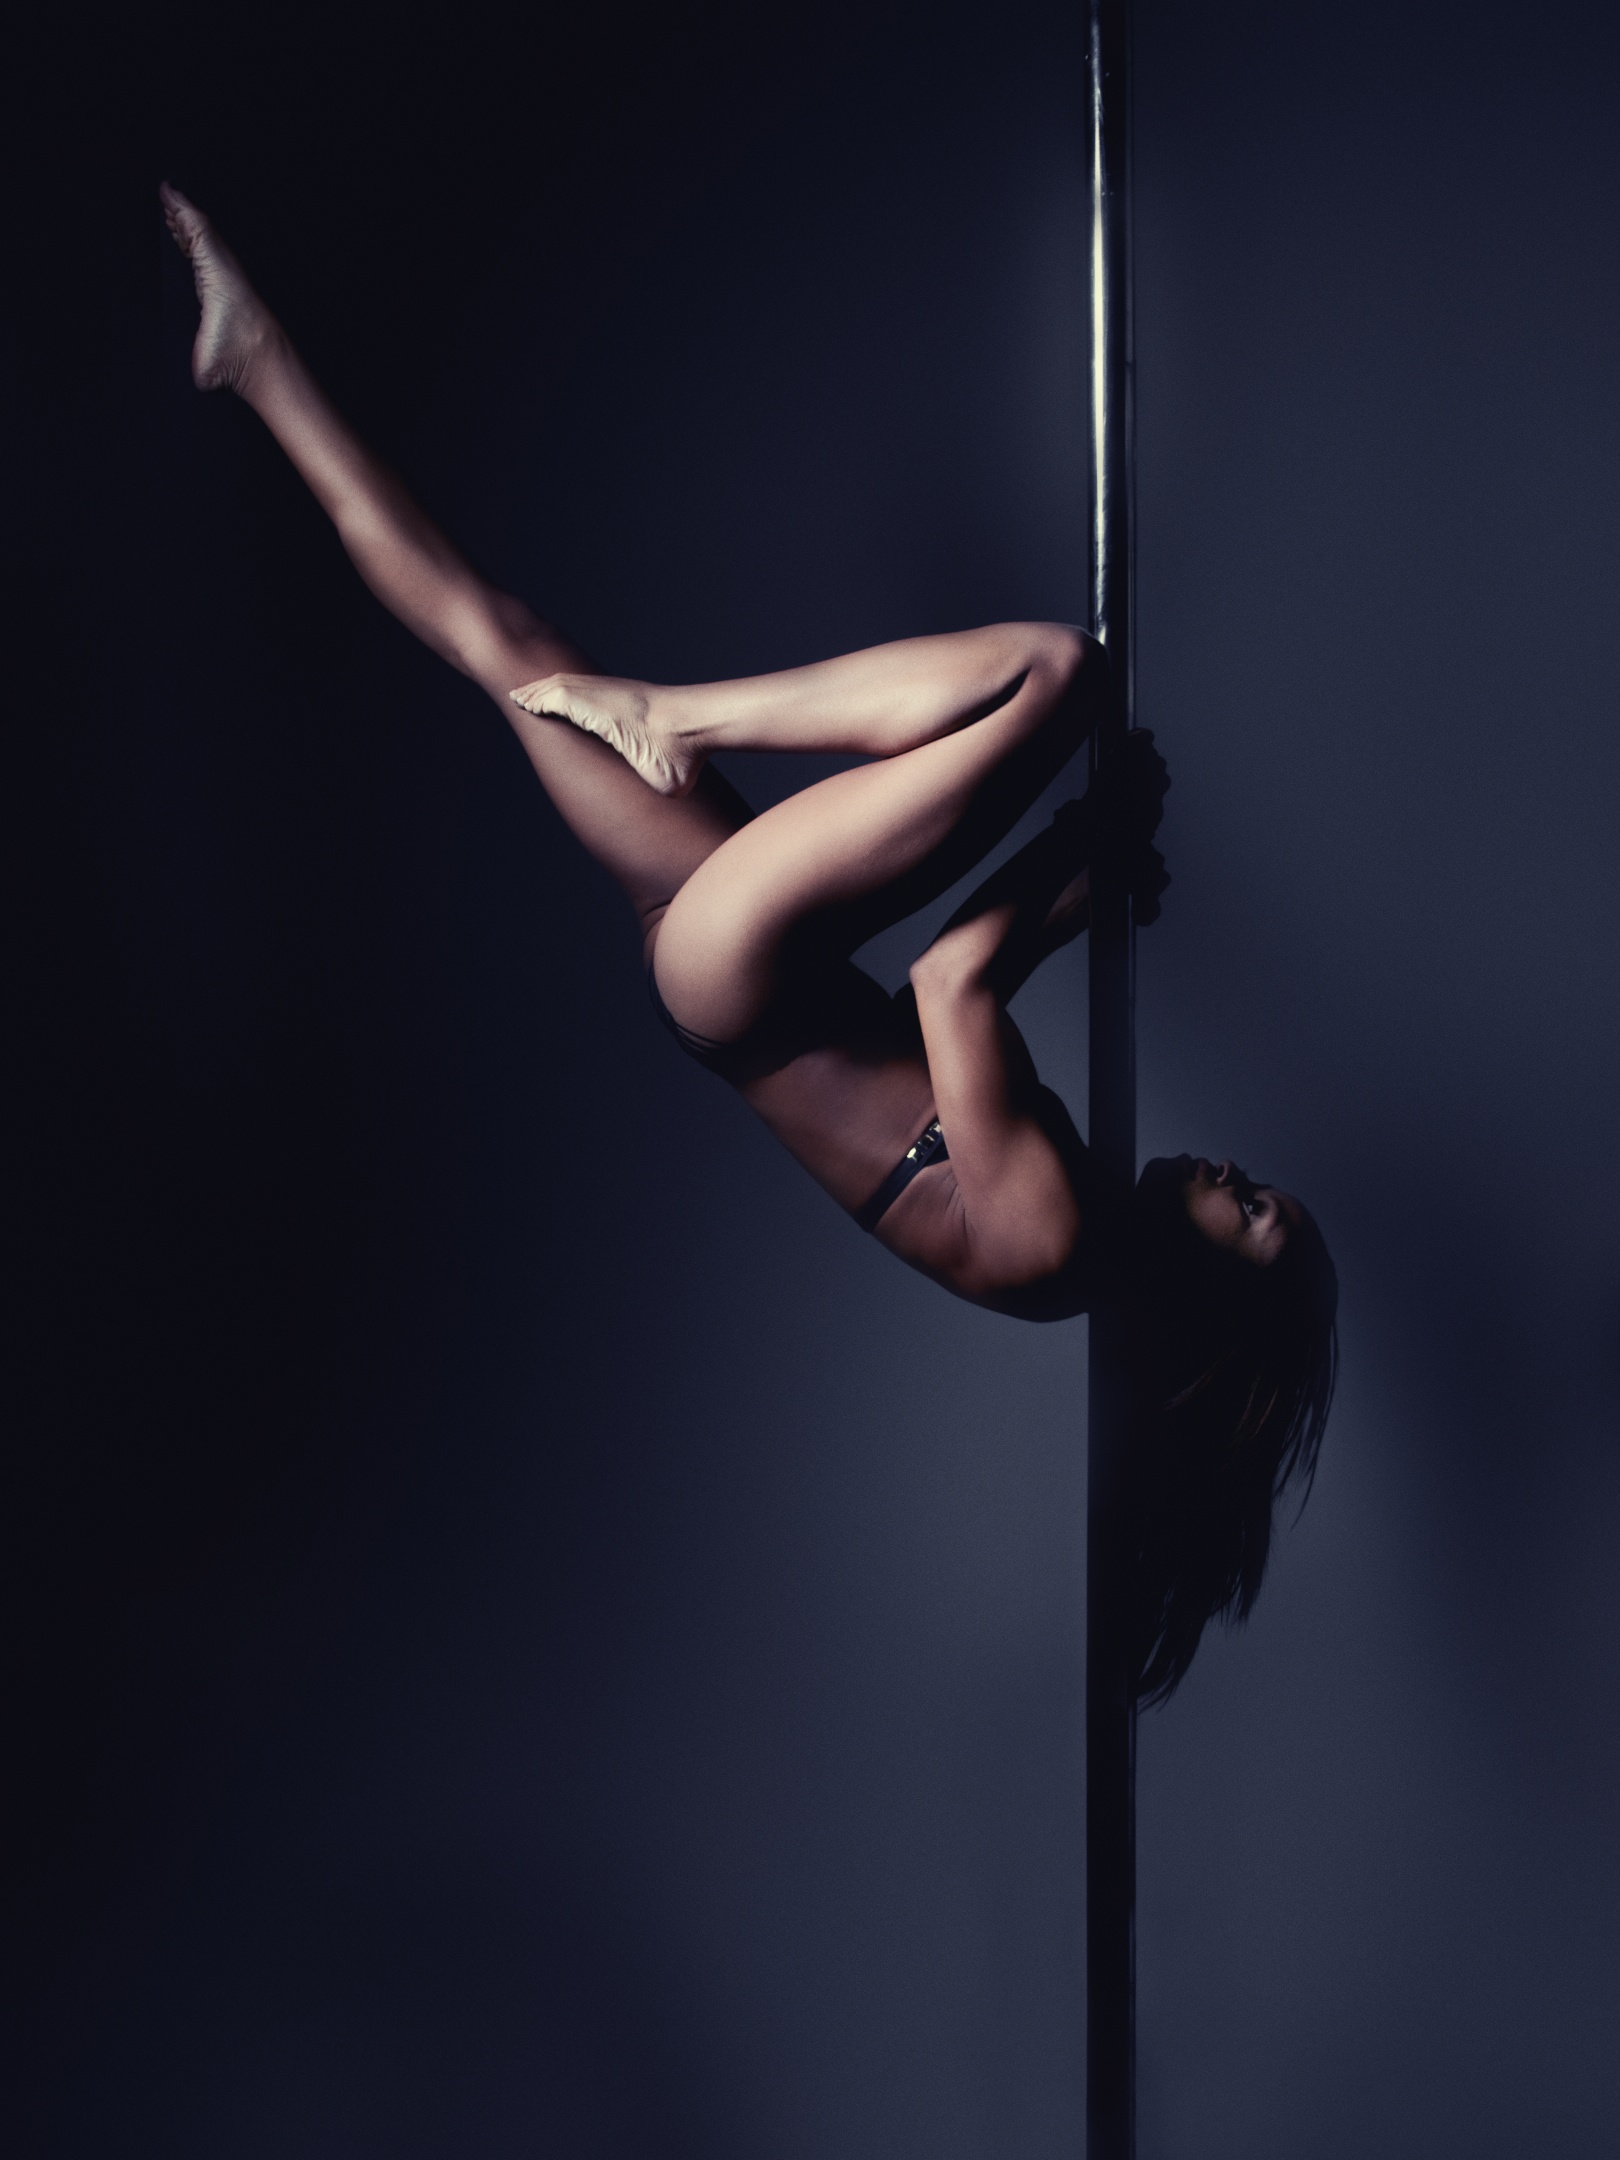 Nicole ThePole in shoulder mount